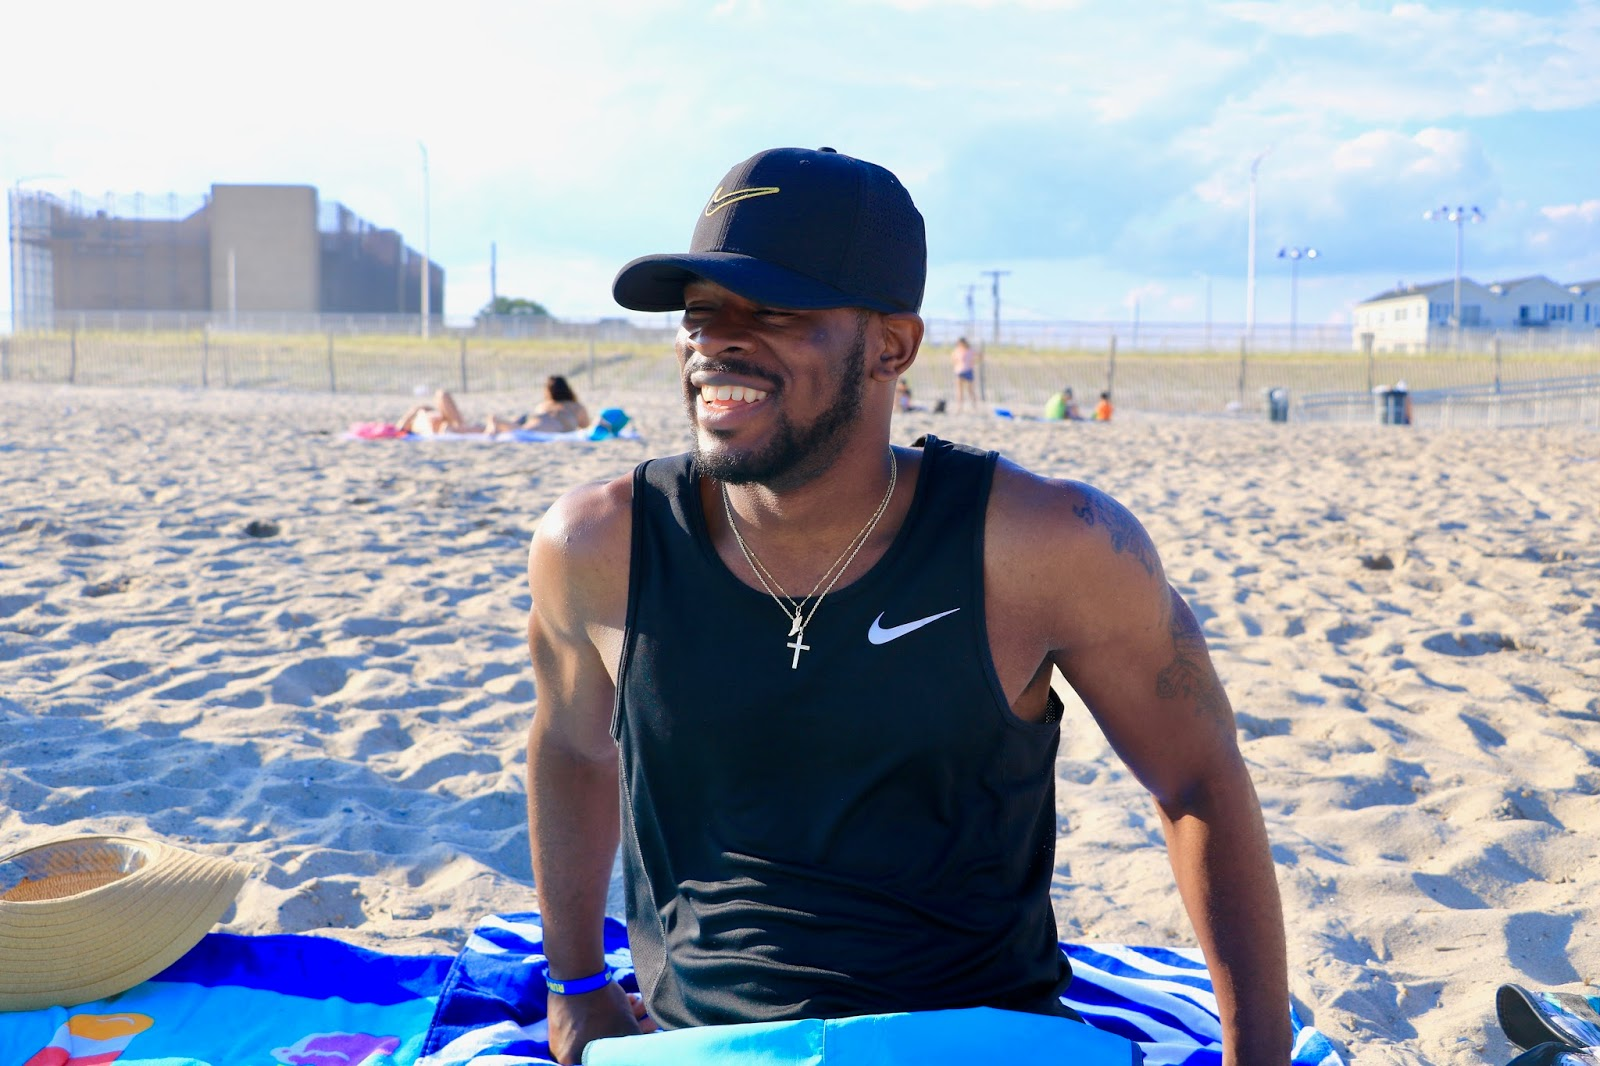 Antonio Owens in Nike athletic wear on the beach